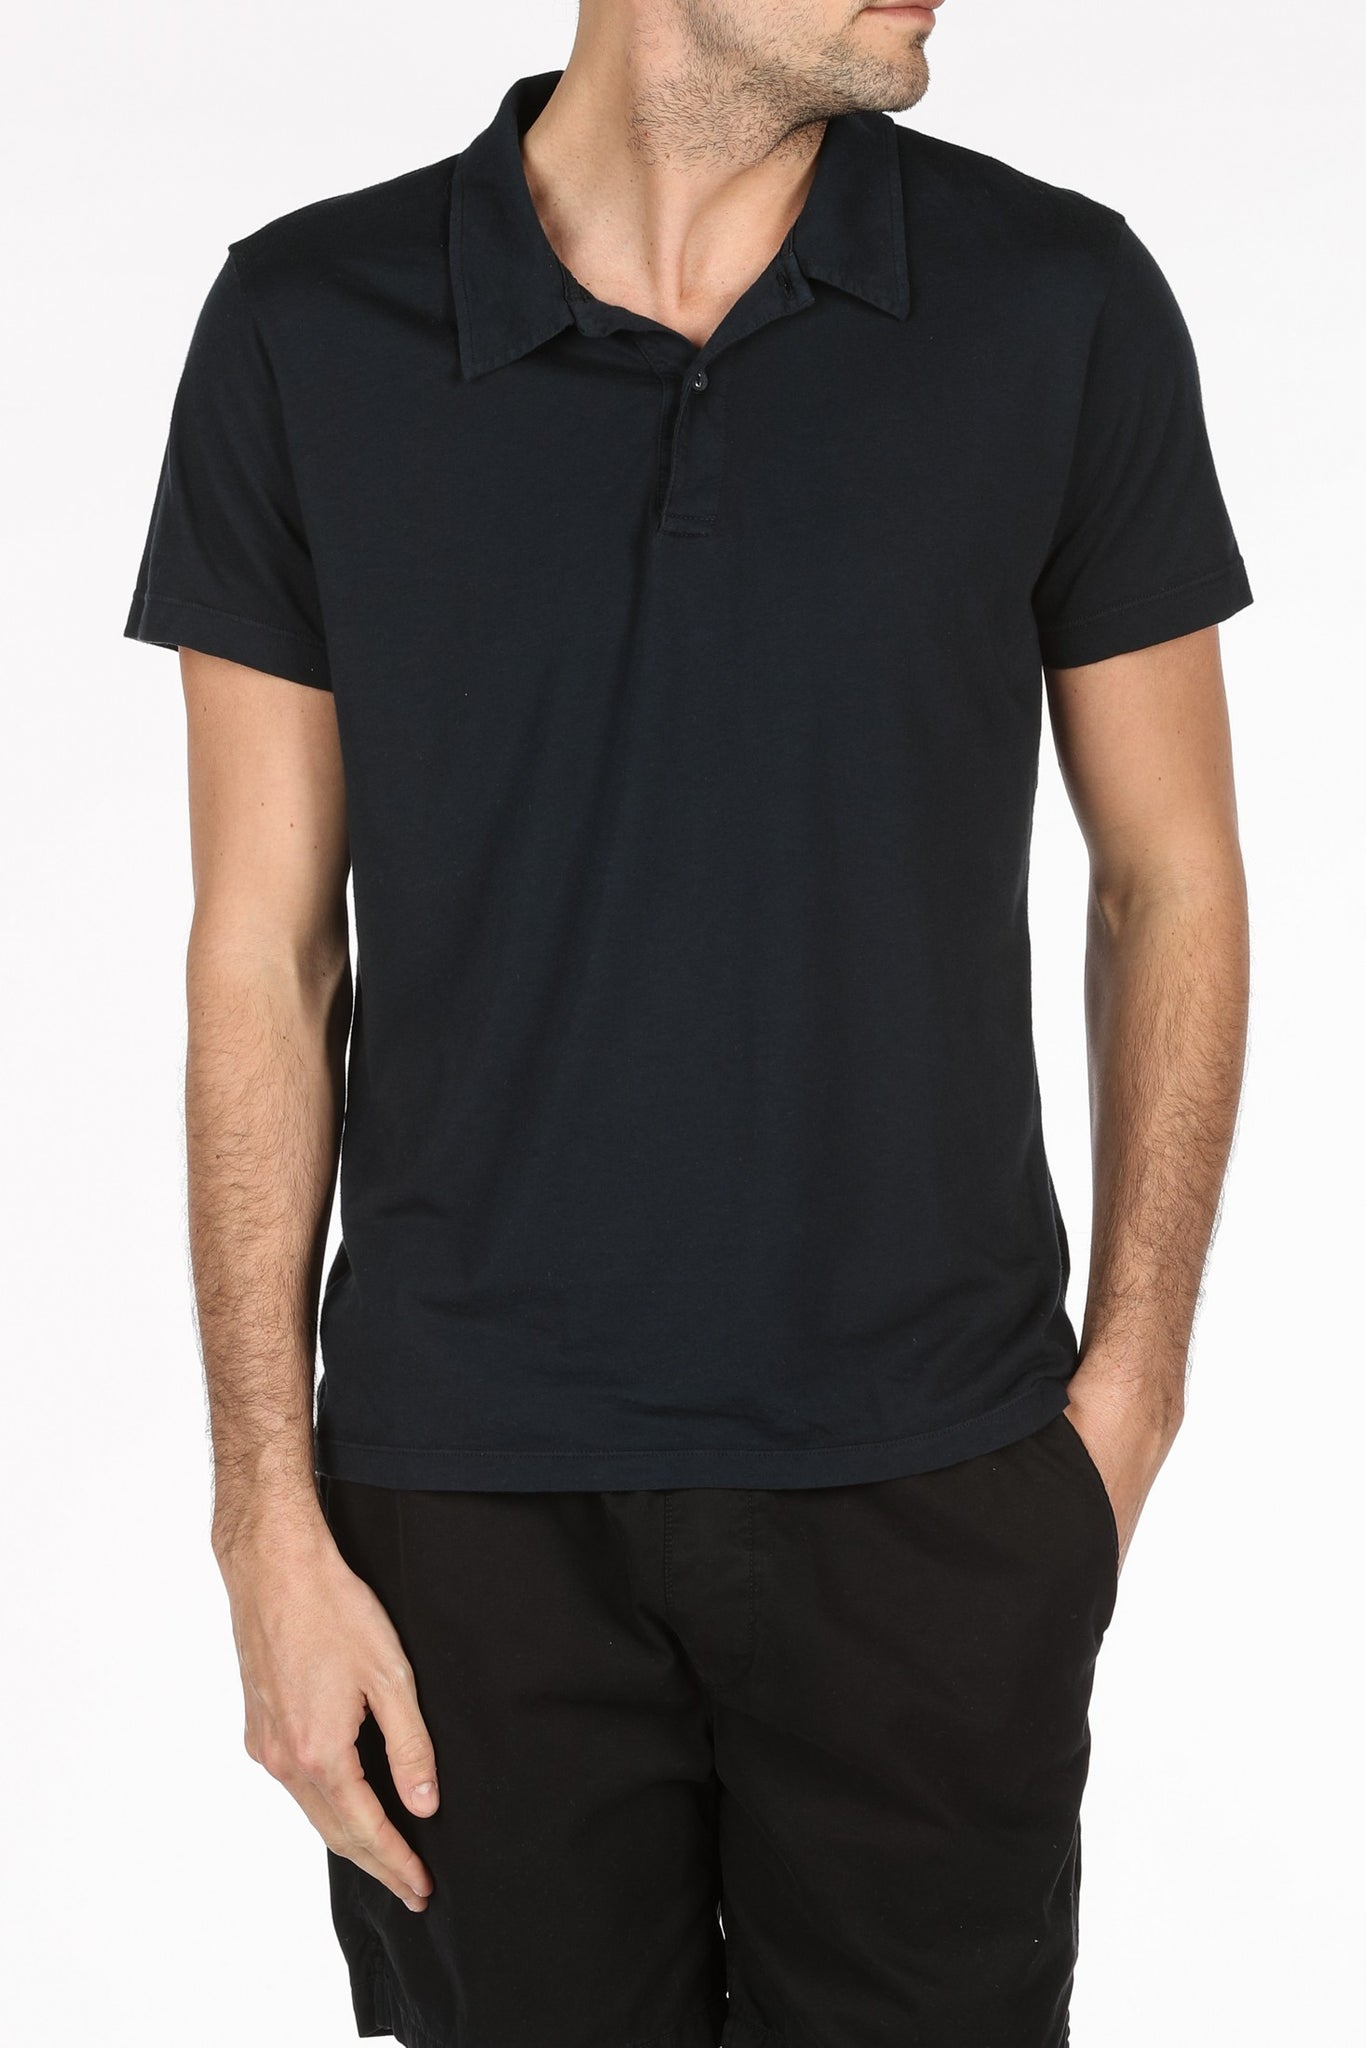 Save Khaki United Supima Jersey Polo - Black